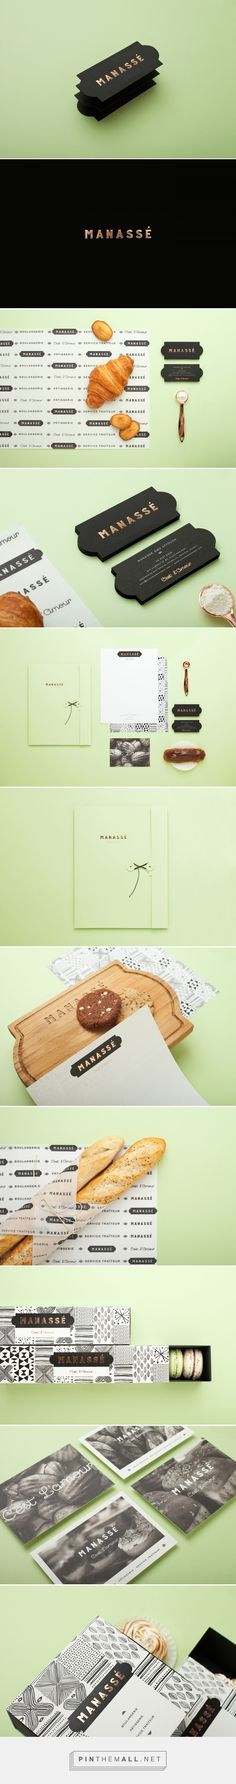 Manassé on Behance... - a grouped images picture - Pin Them All